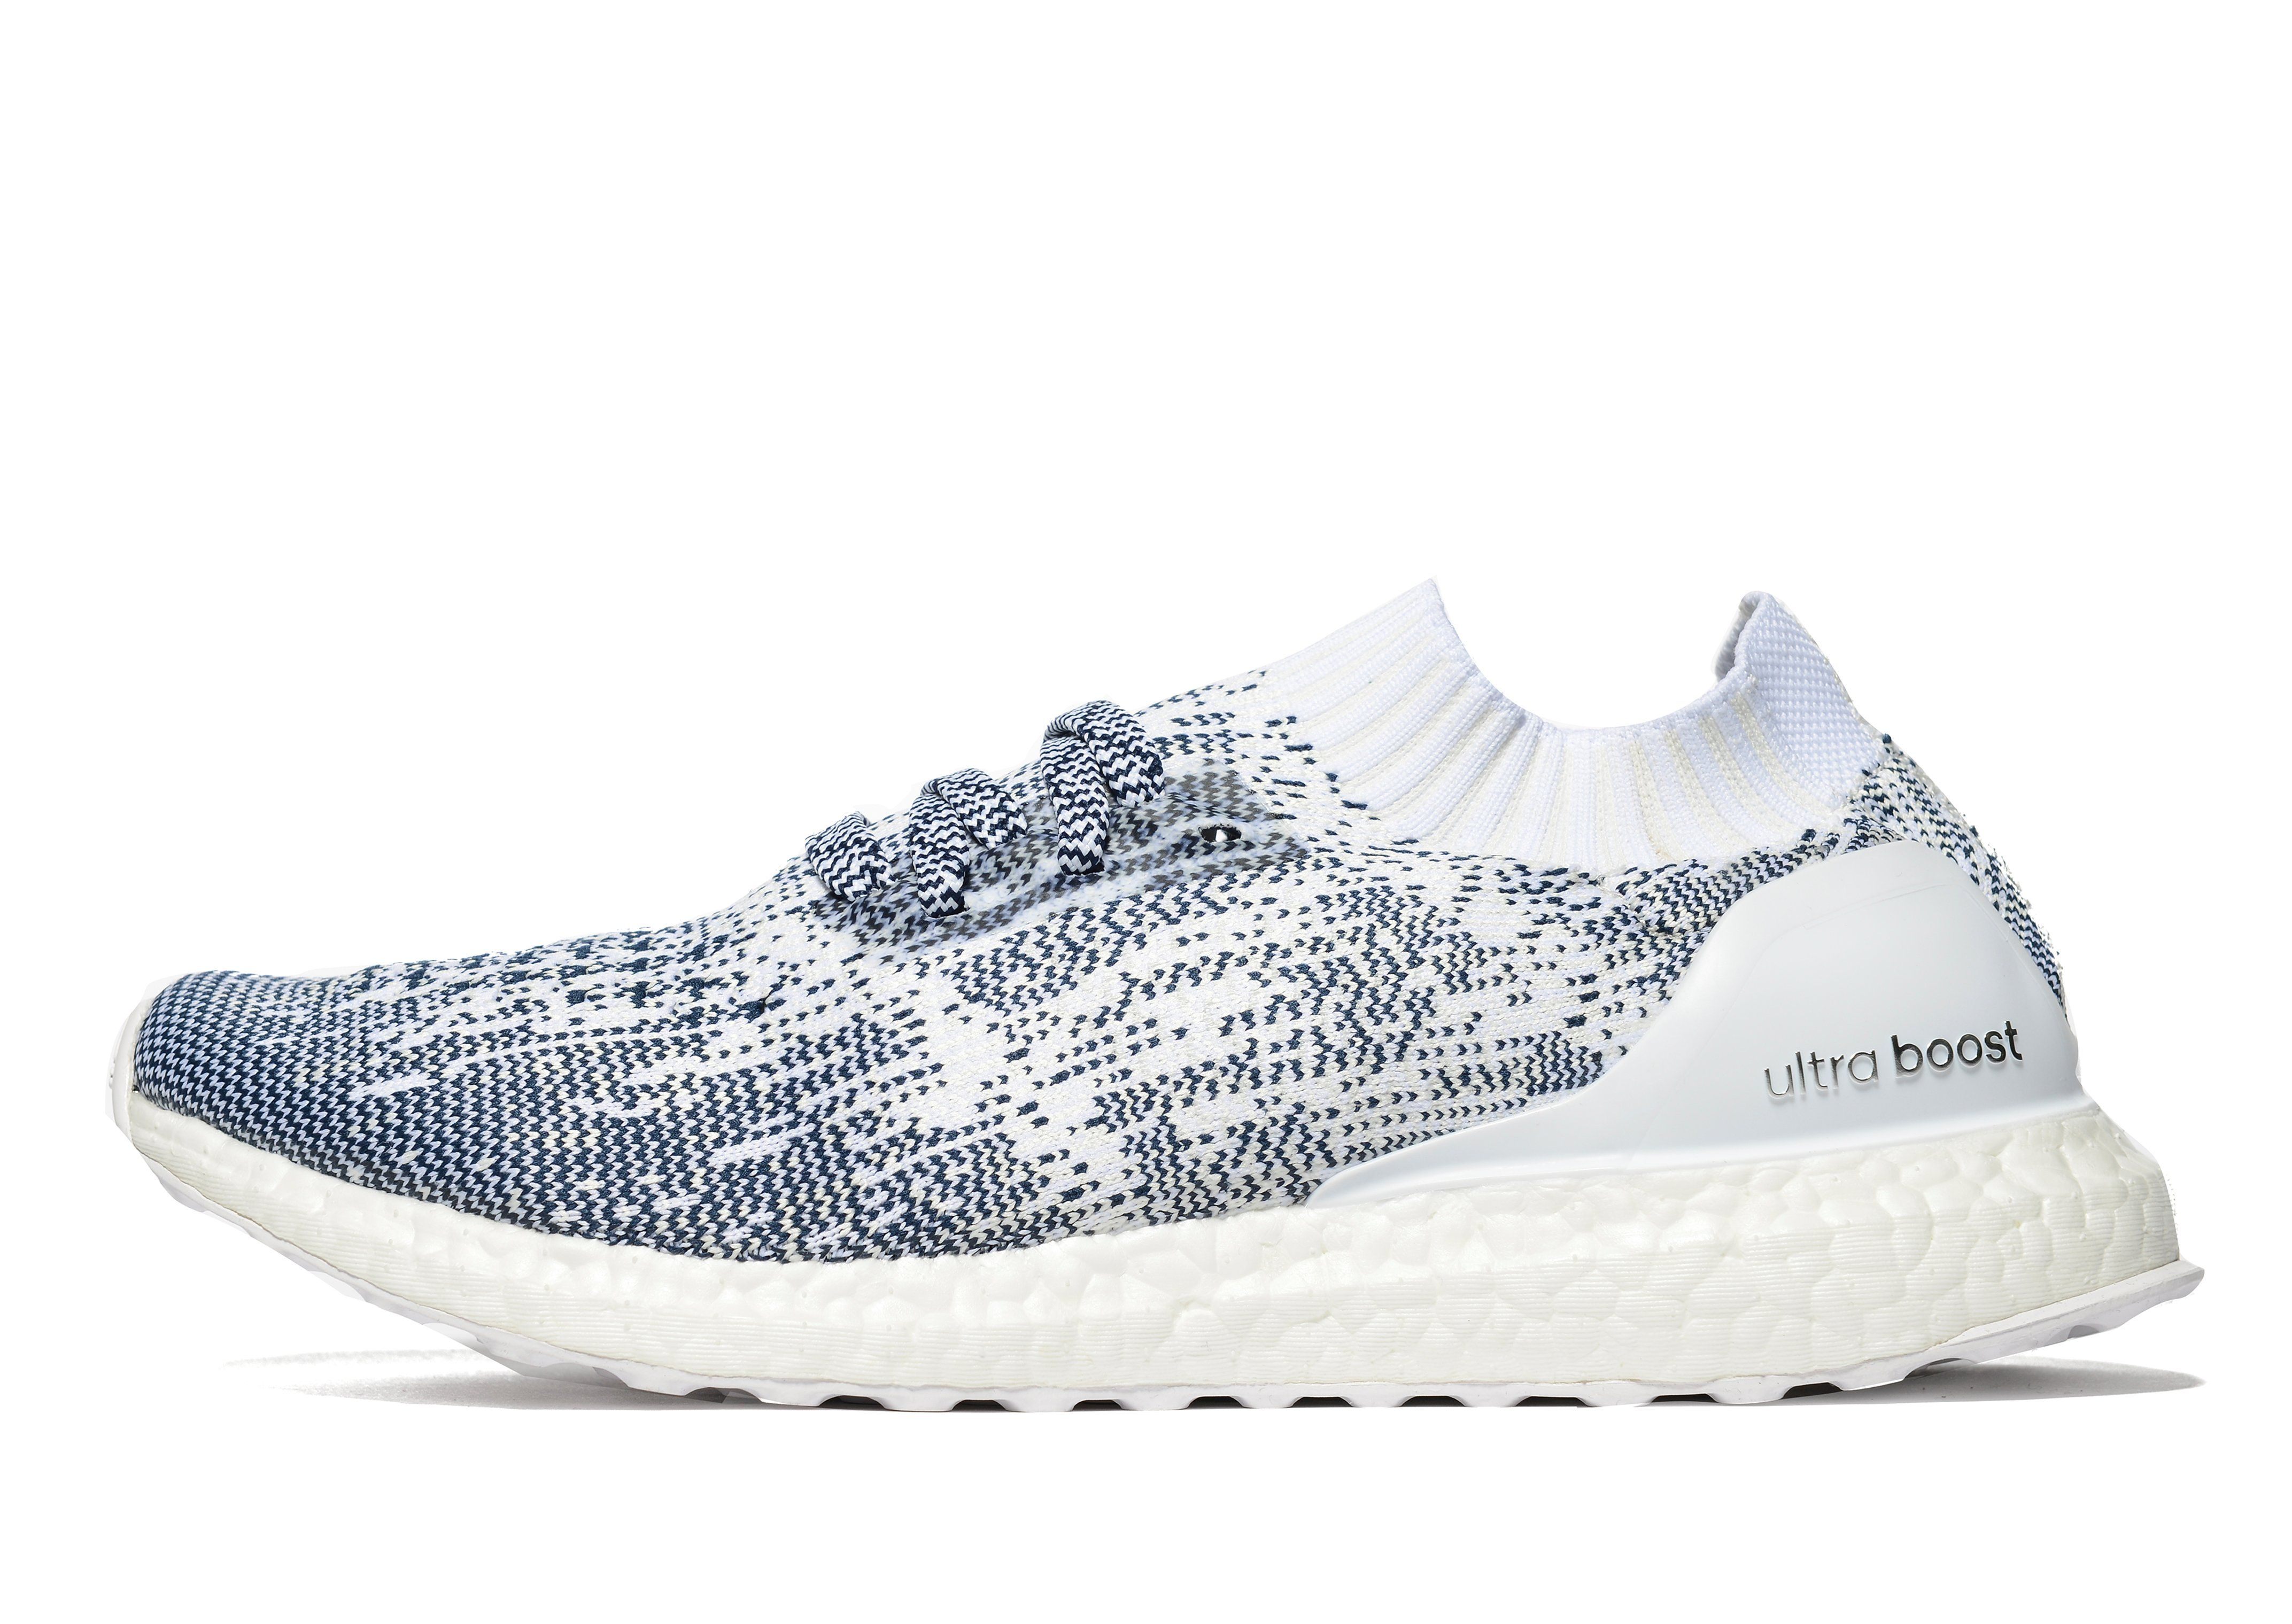 adidas ultraboost uncaged jd sports. Black Bedroom Furniture Sets. Home Design Ideas